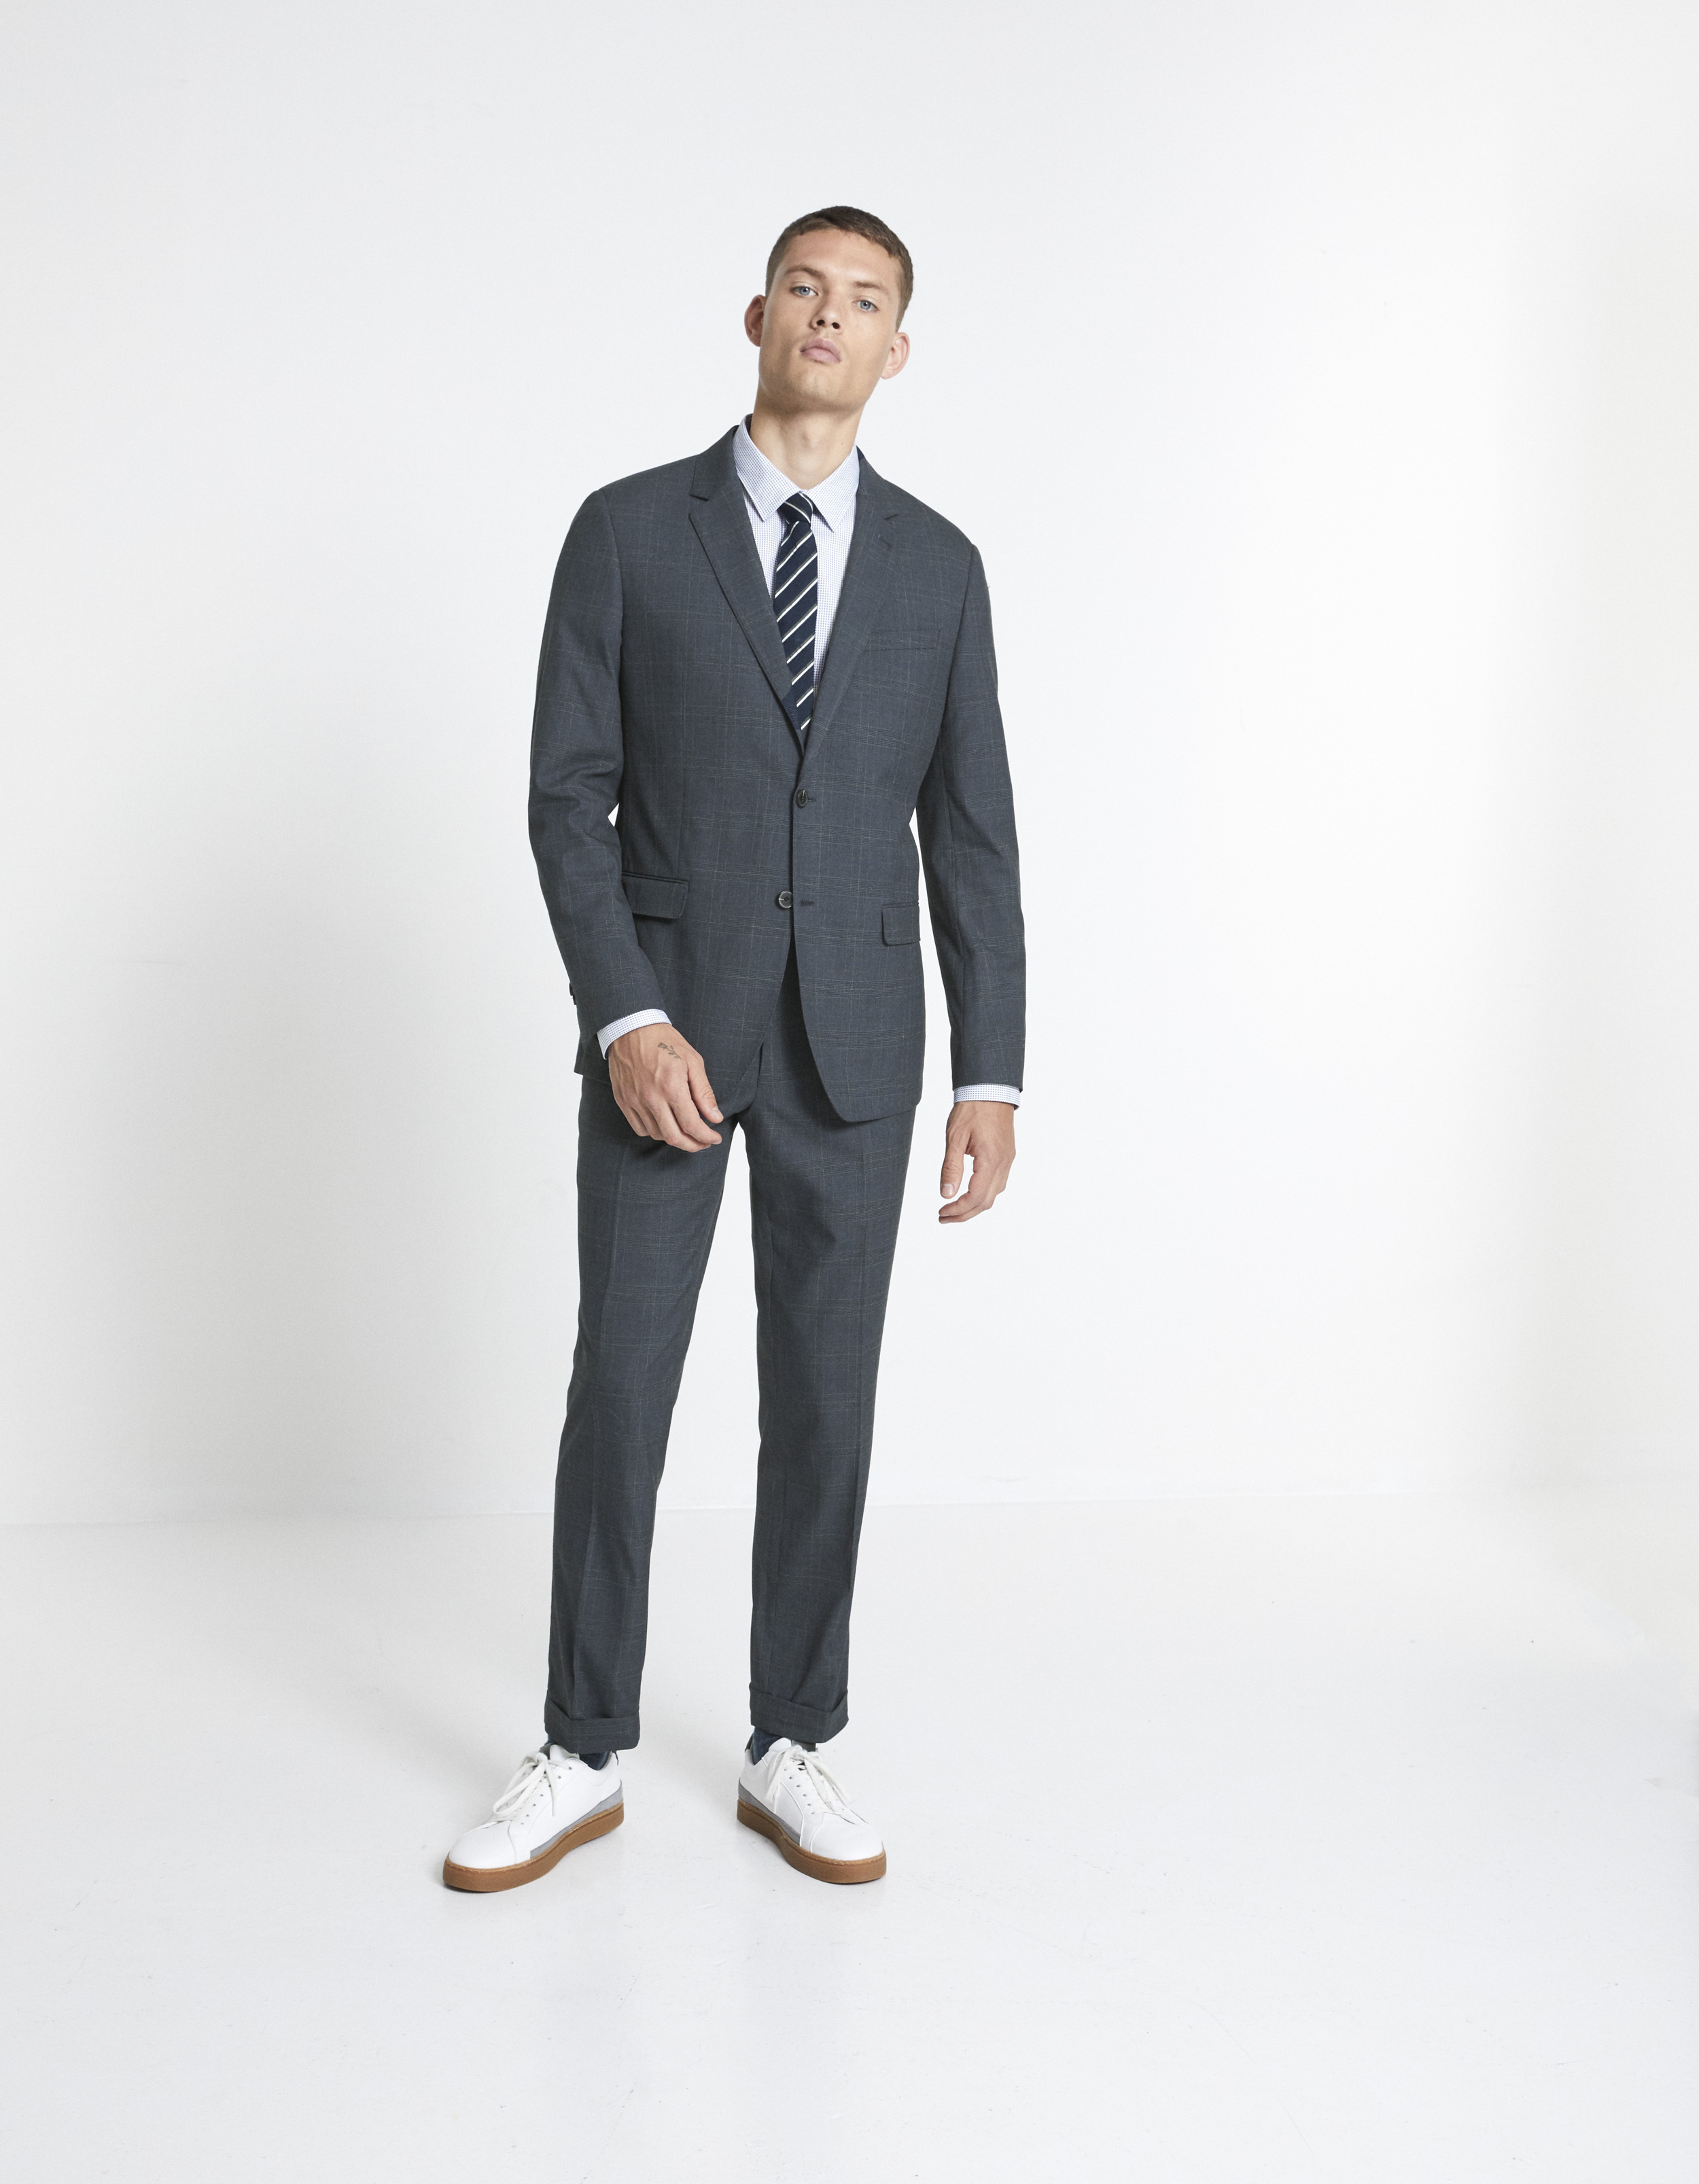 Costume Willy slim - gris - LOOK_COSTUME_MUWILLYANTHRACITE - Image à plat - Celio France